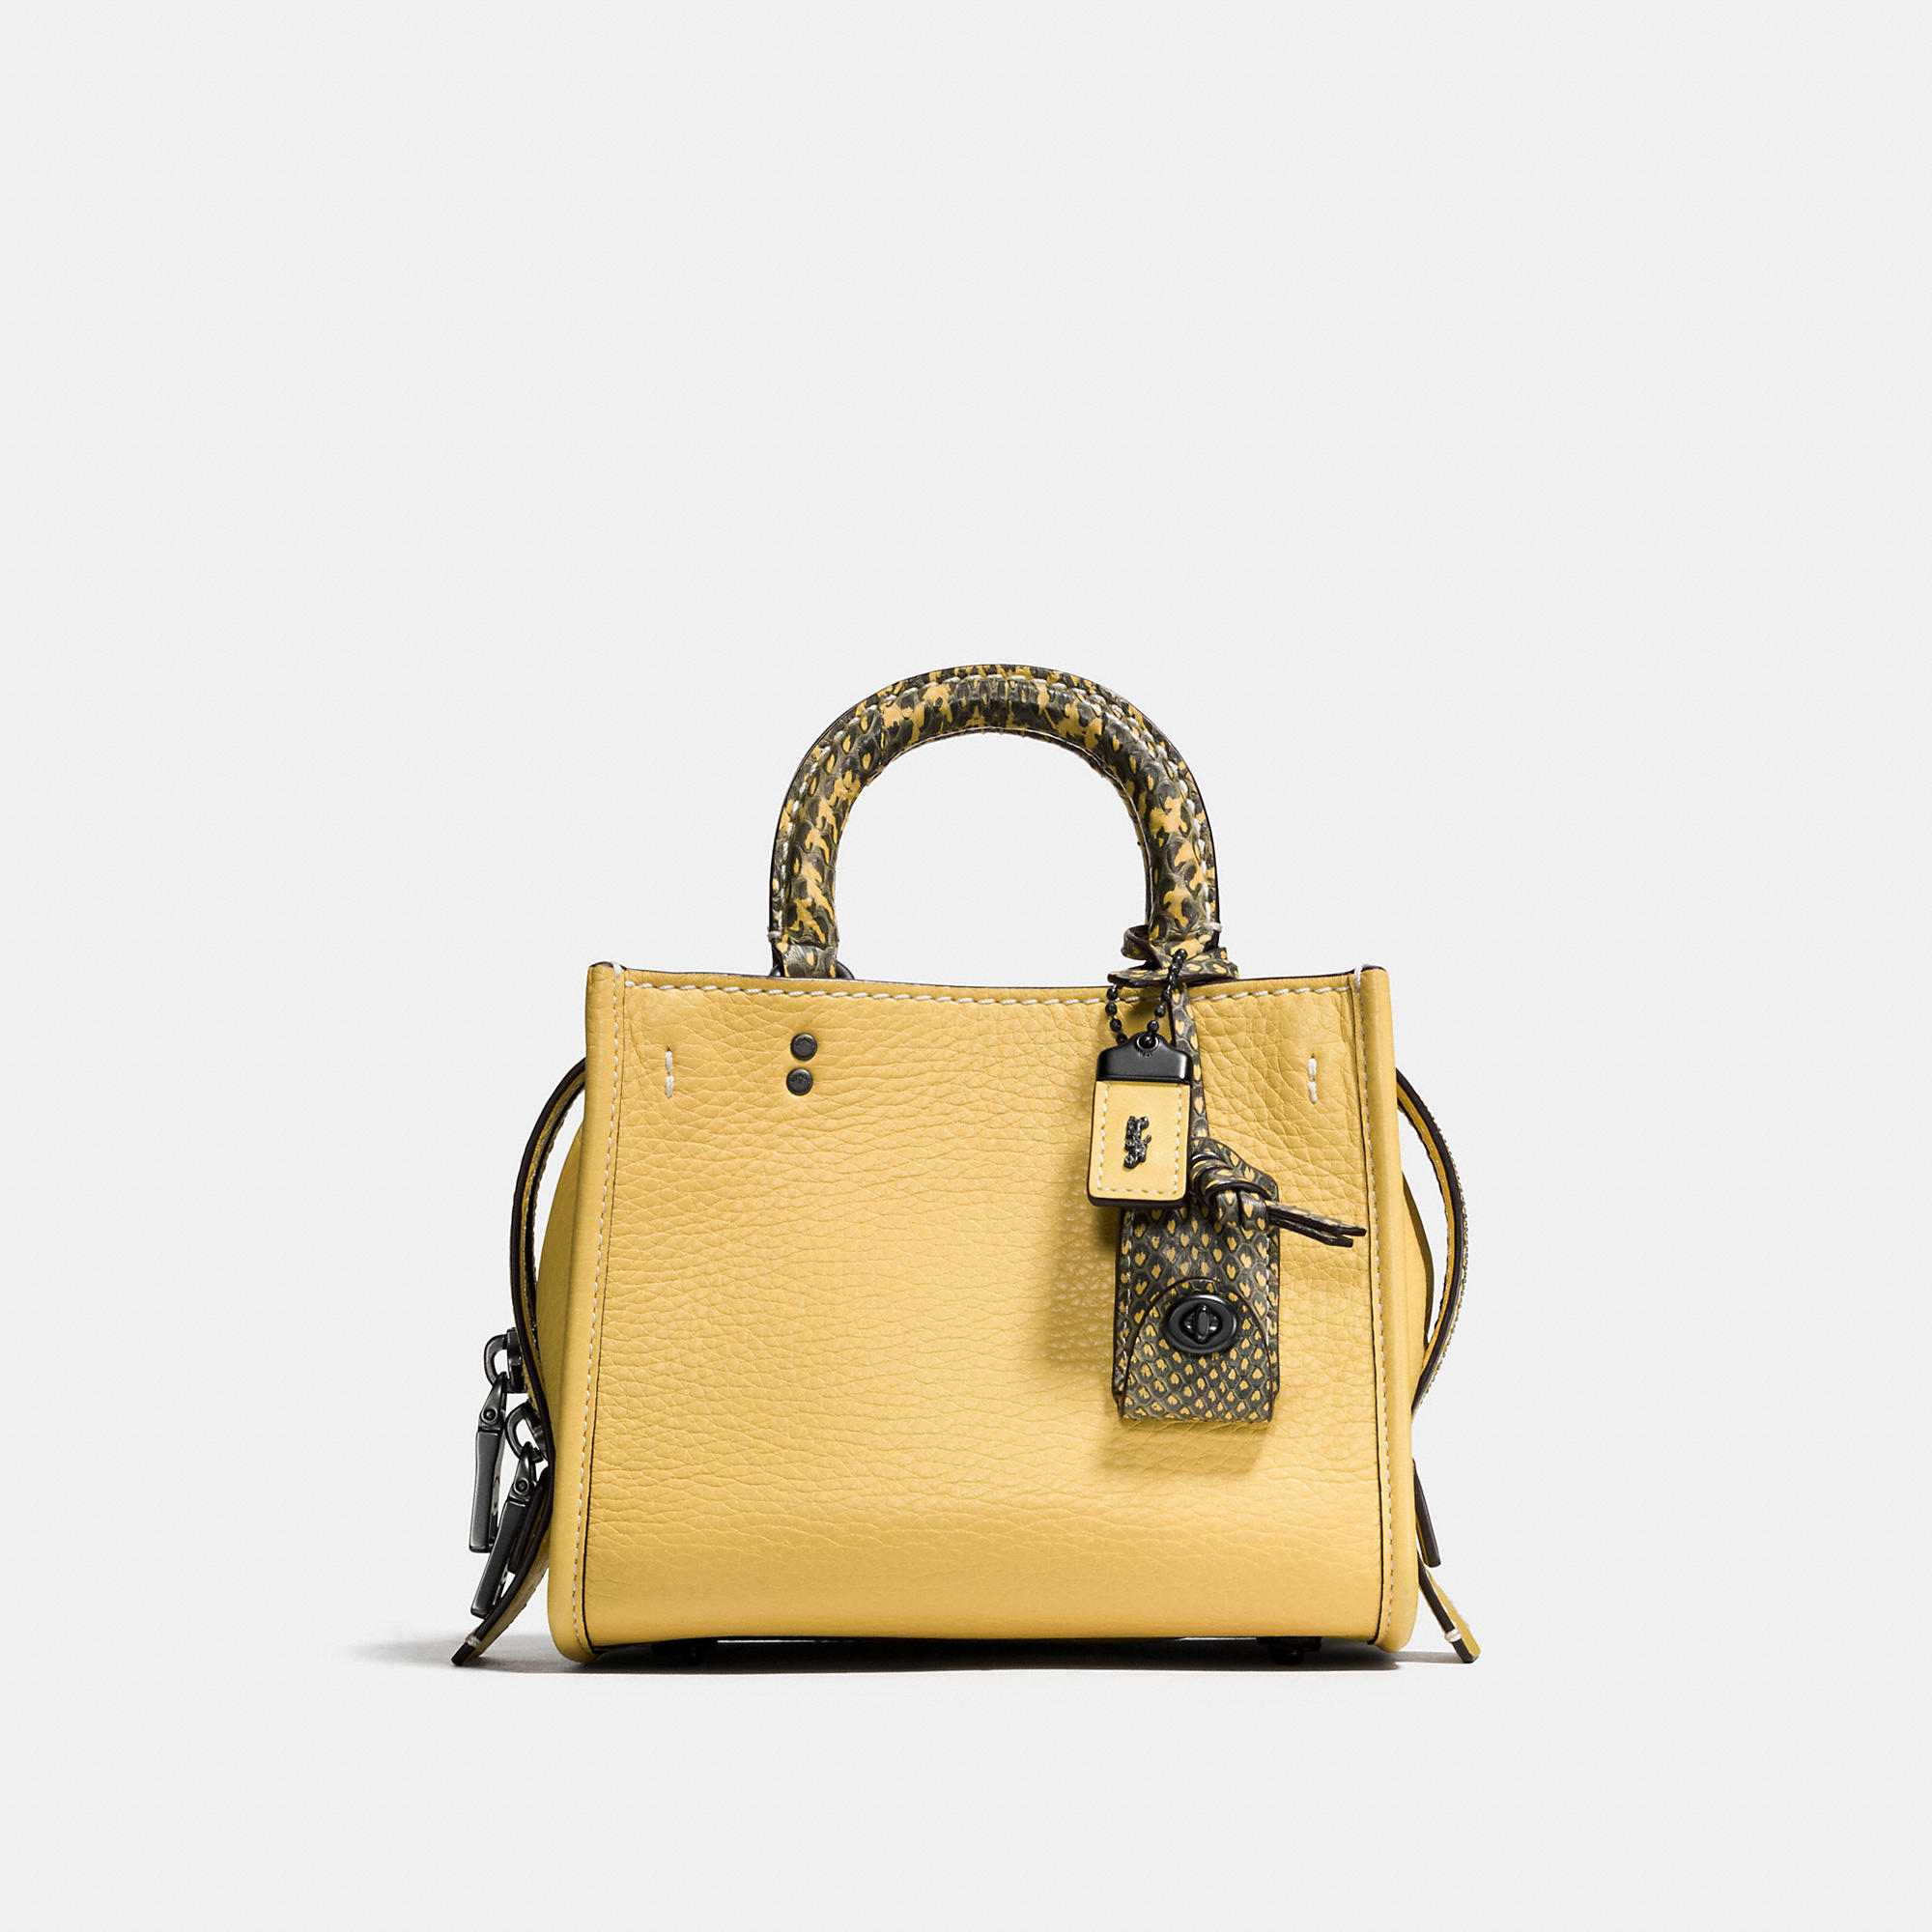 Coach Rogue 17 In Colorblock Leather With Snake Details